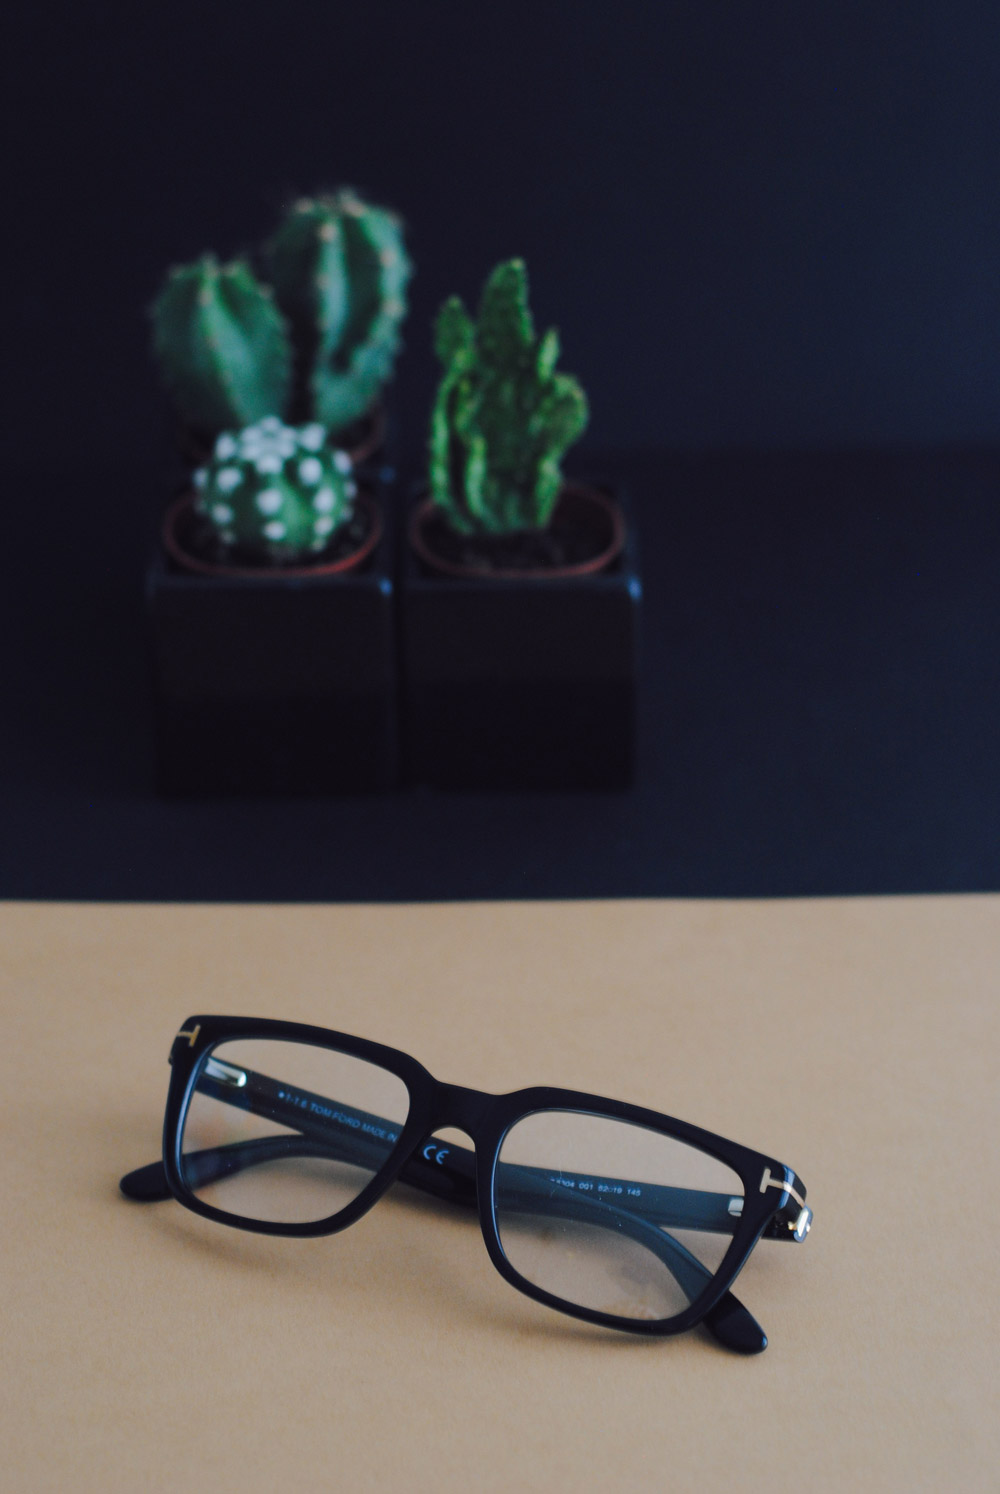 5417203f2f movember eyeglasses tom ford movember eyeglasses tom ford prescriptions